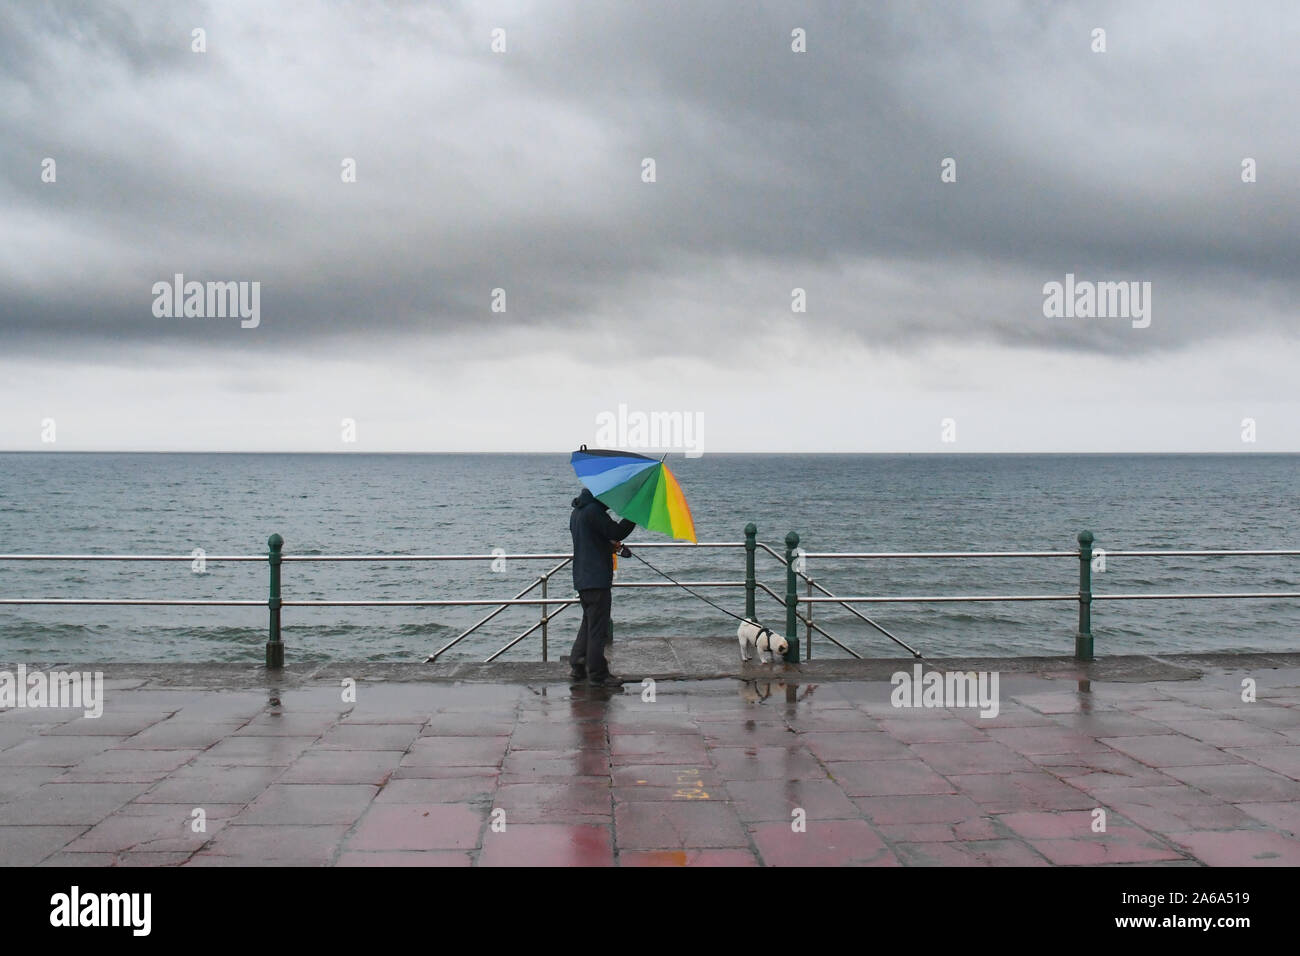 Man walking dog on windy seafront wearing coat and holding a colourful umbrella. Stock Photo